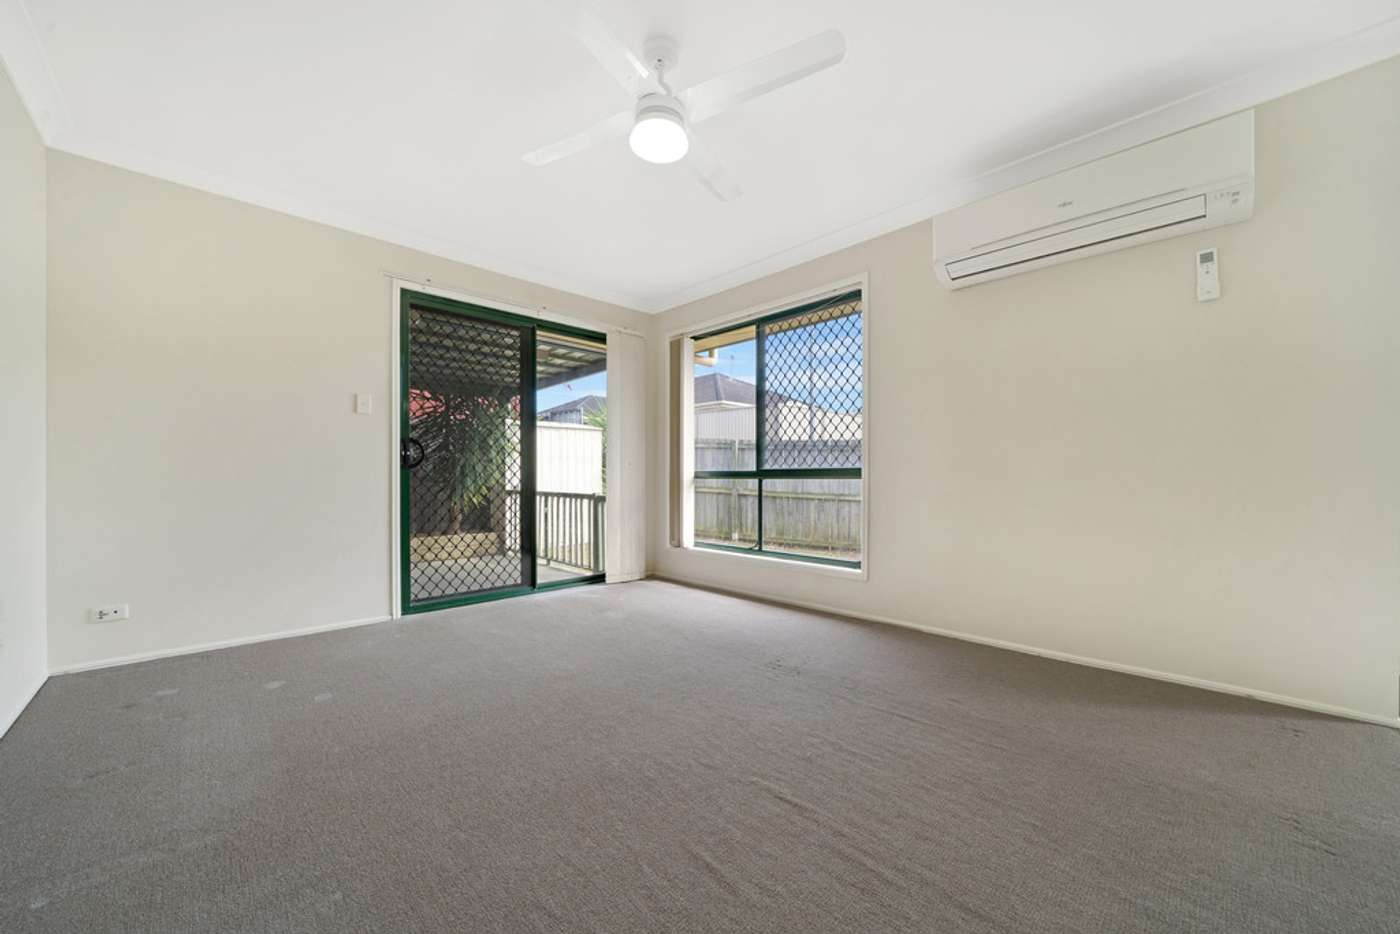 Fifth view of Homely house listing, 15/7 Billabong Drive, Crestmead QLD 4132